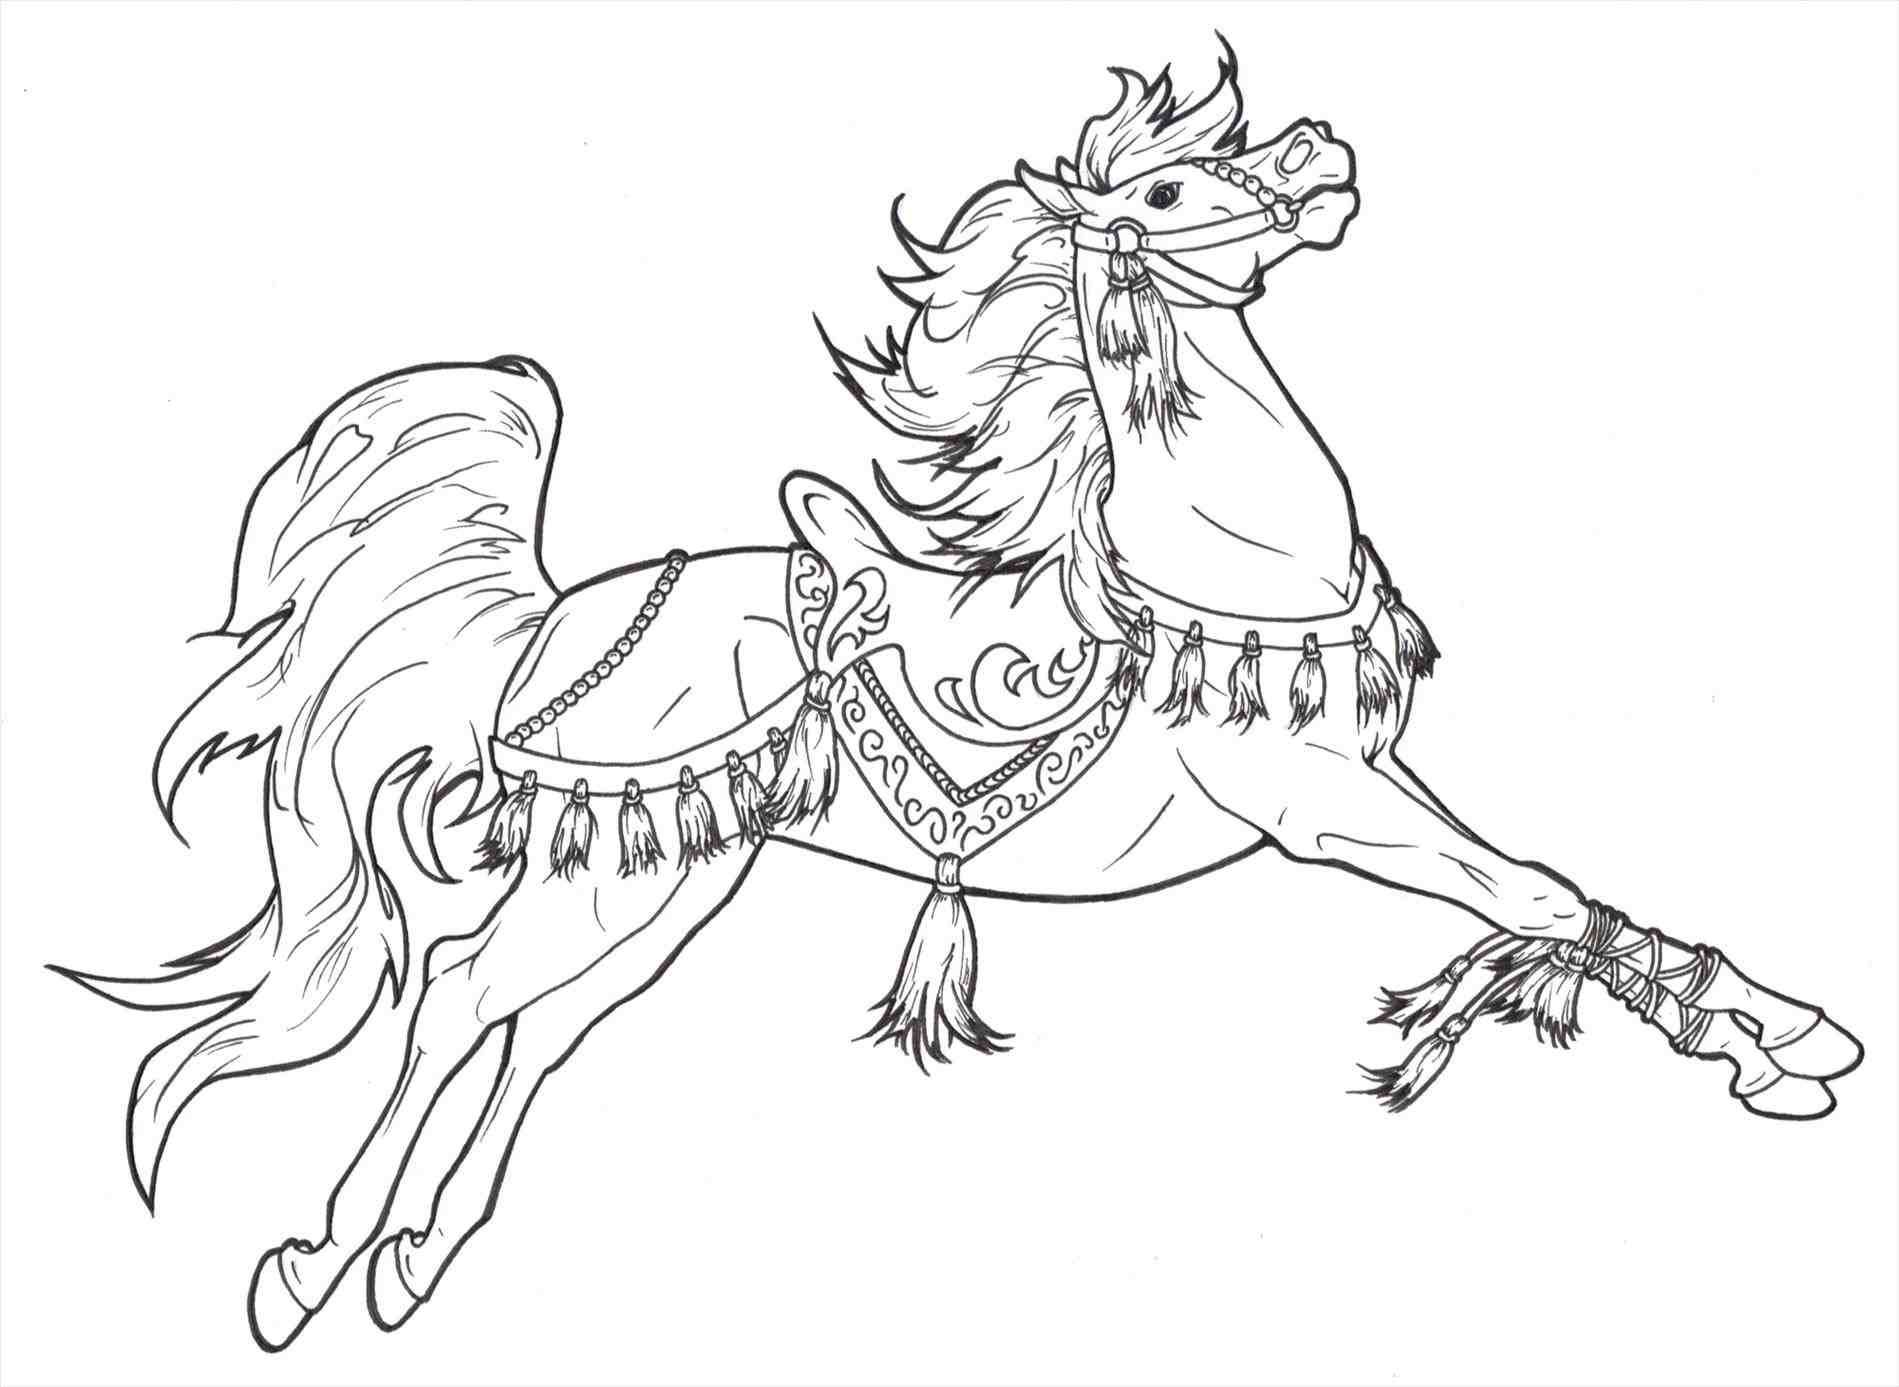 New post christmas horse drawing xmast pinterest horse drawn